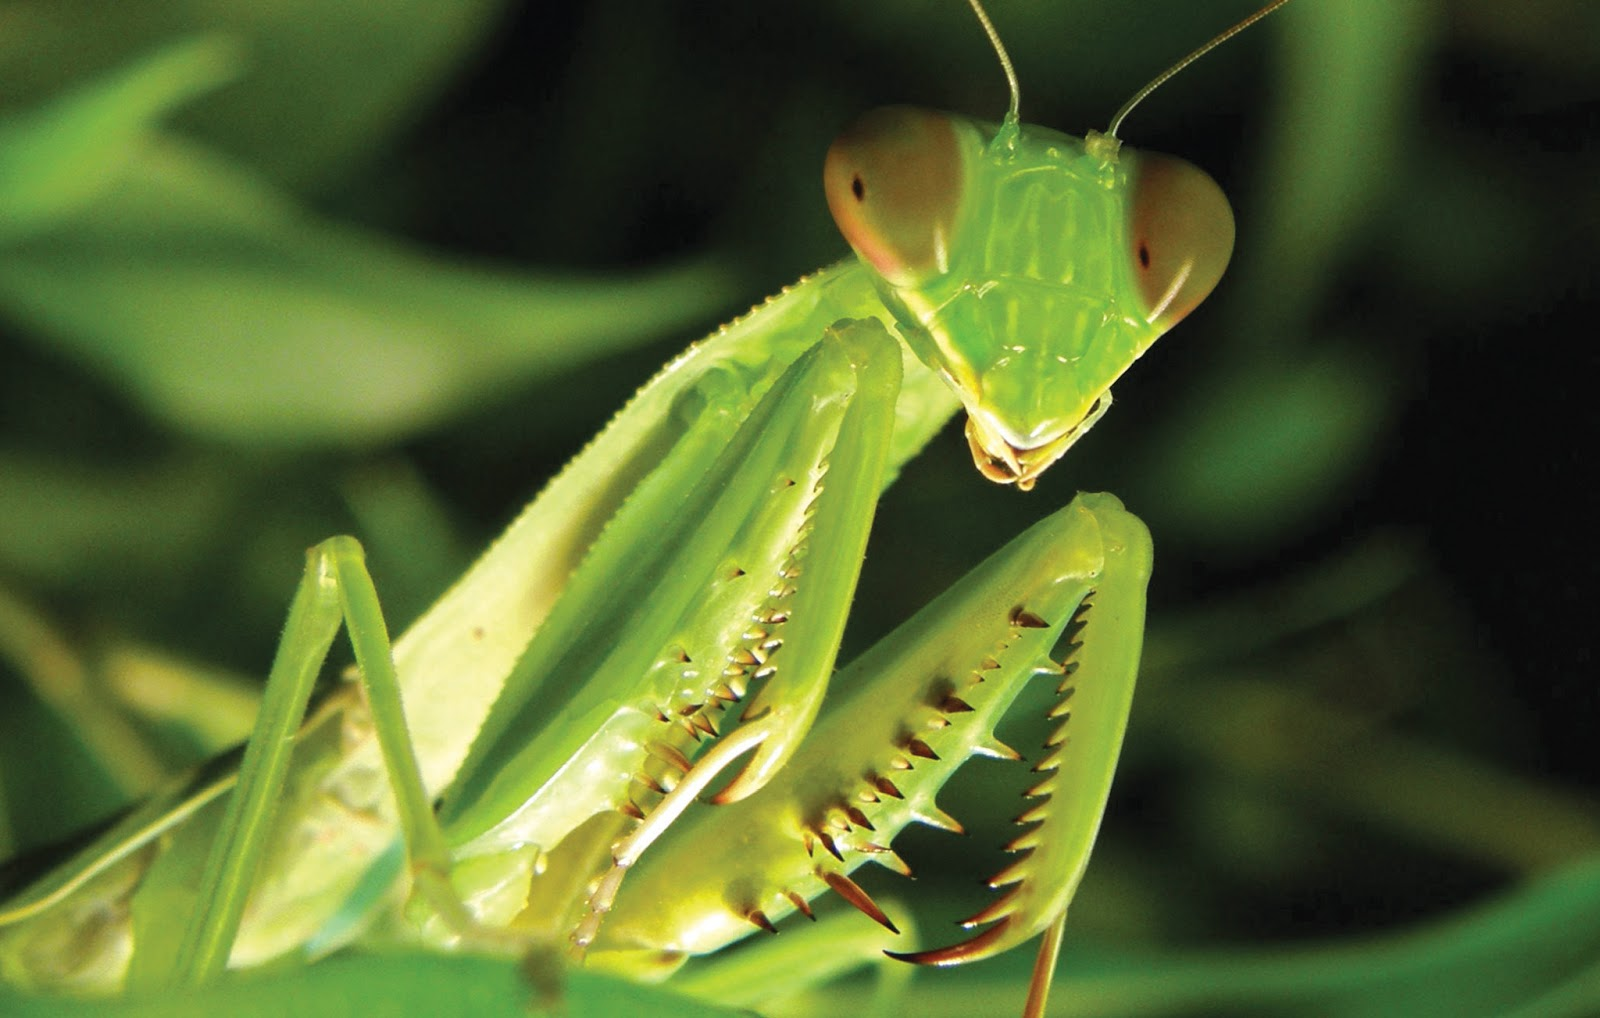 the characteristics of praying mantis a bug species Mantidae (also known as praying mantis) is the common name for an insect of the order mantodea which are mostly tropical or subtropical the insect is named after the distinctive way they hold their front legs up and together and is in a prayer, and in greek the word mantis means prophet.